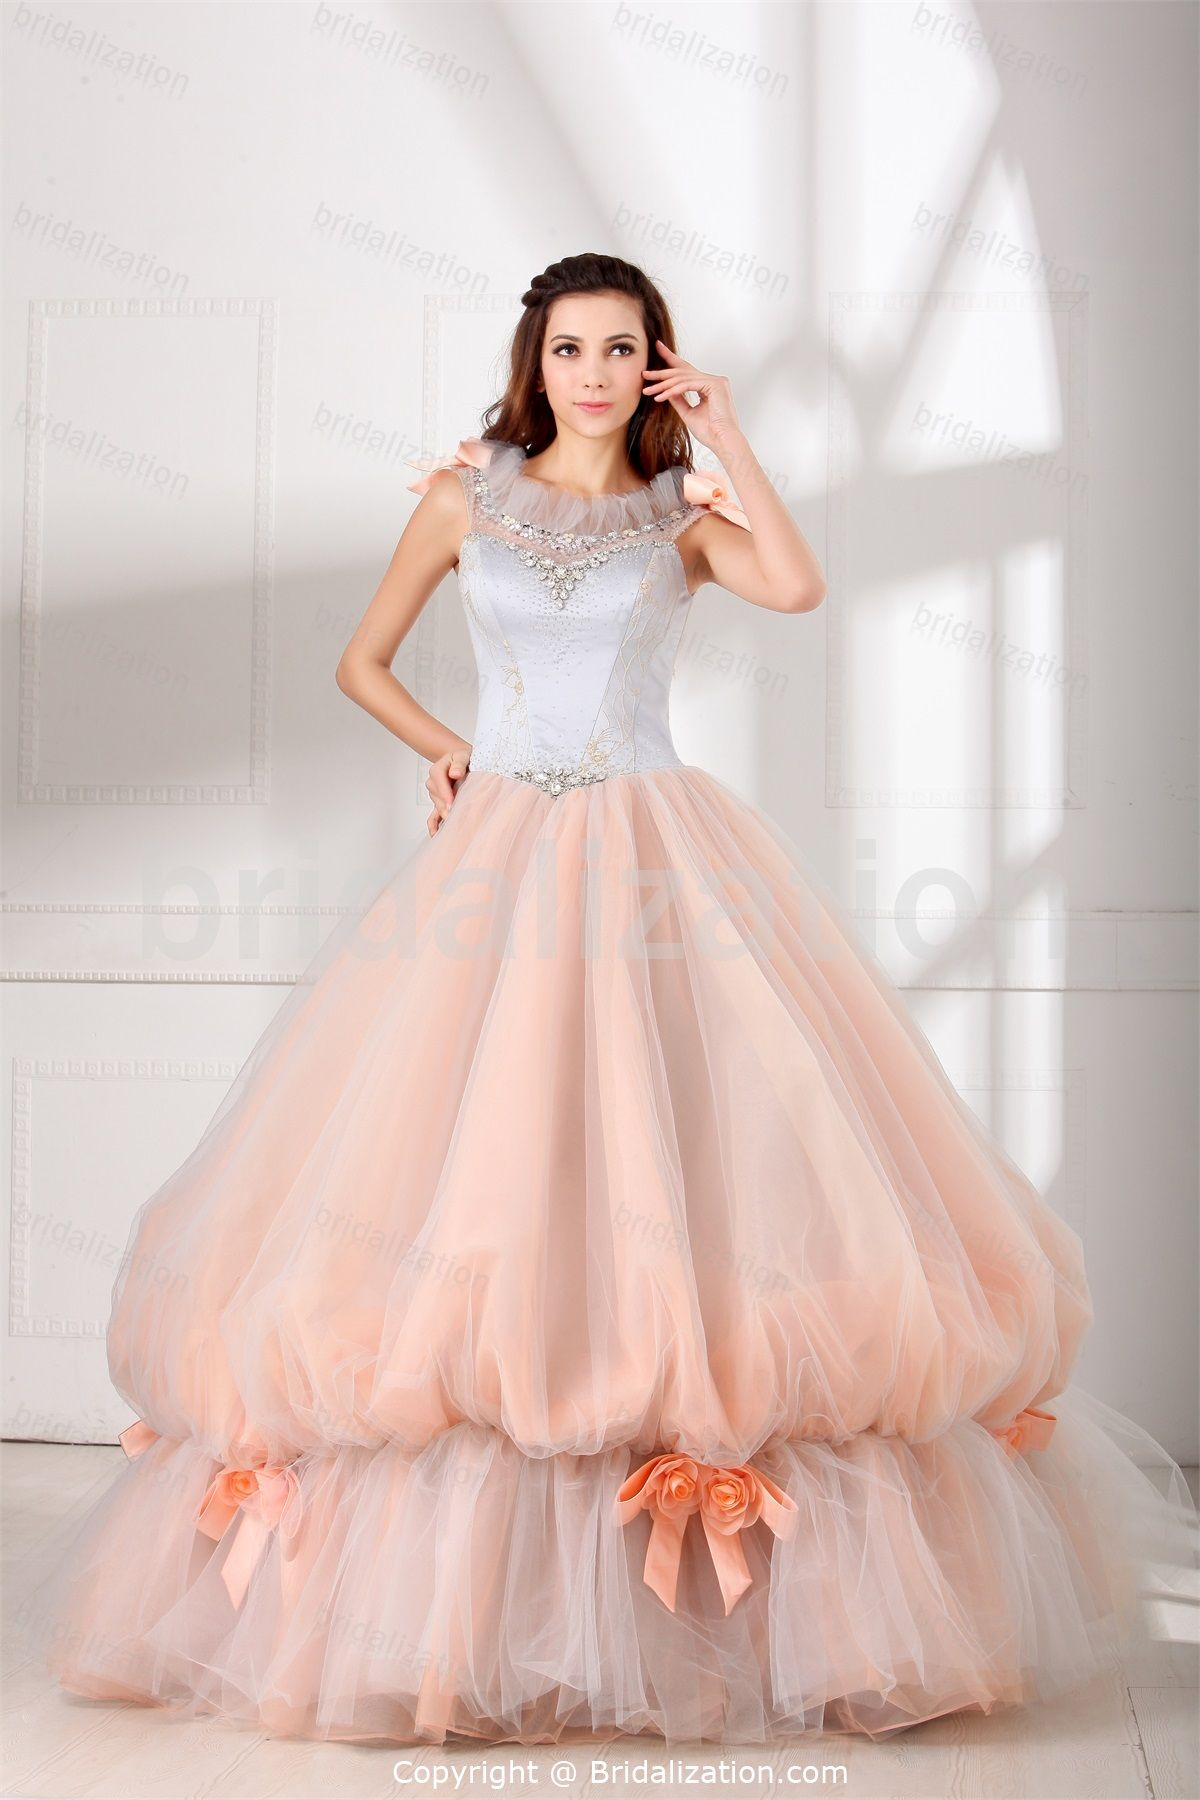 White and silver wedding dresses  SilverPink Hourglass Ball Gown Natural Scoop Outdoor Garden